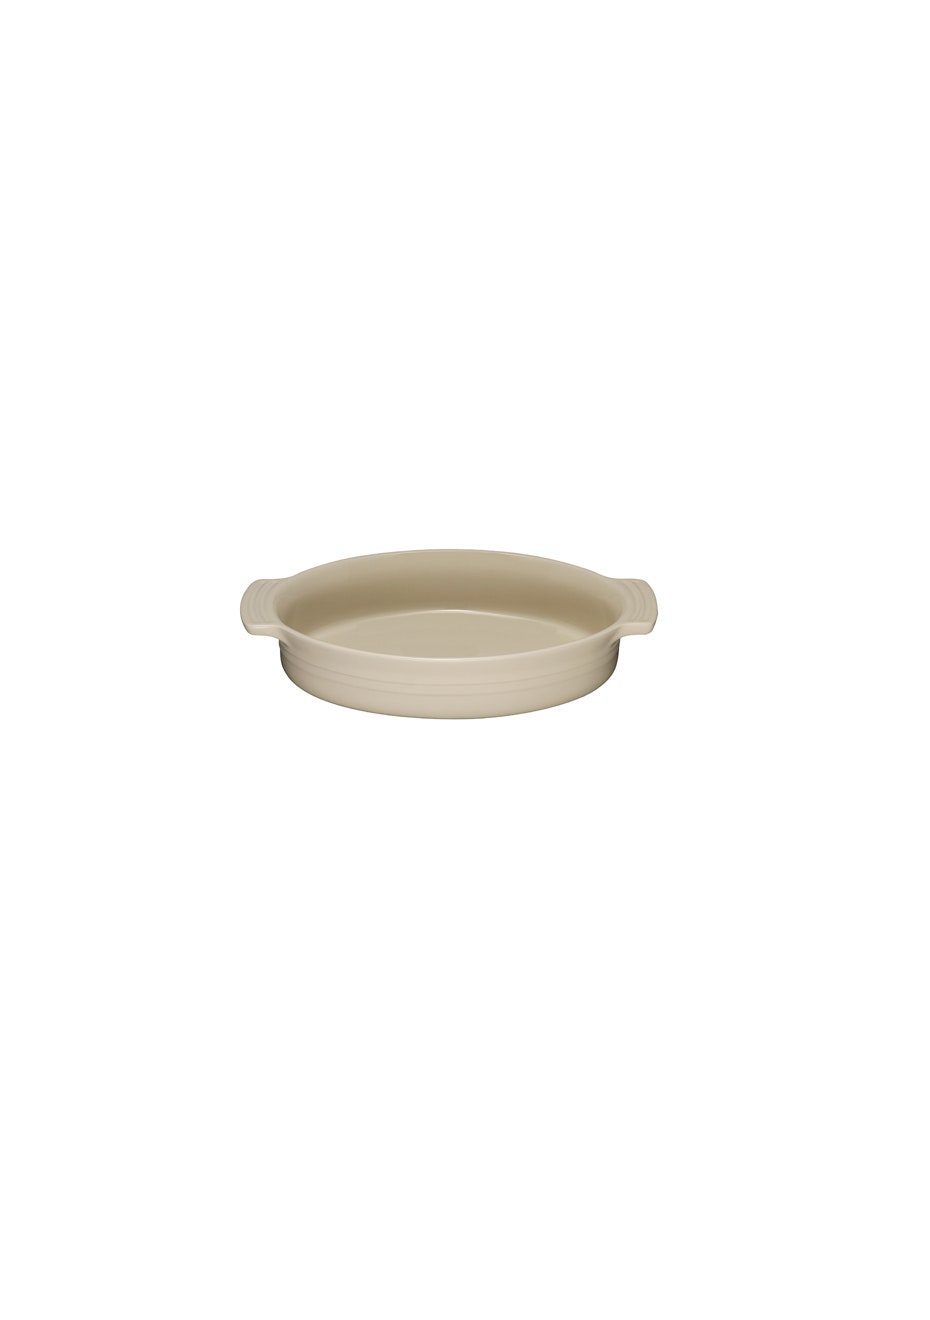 Le Creuset - Stoneware Oval Dish 27 Dune